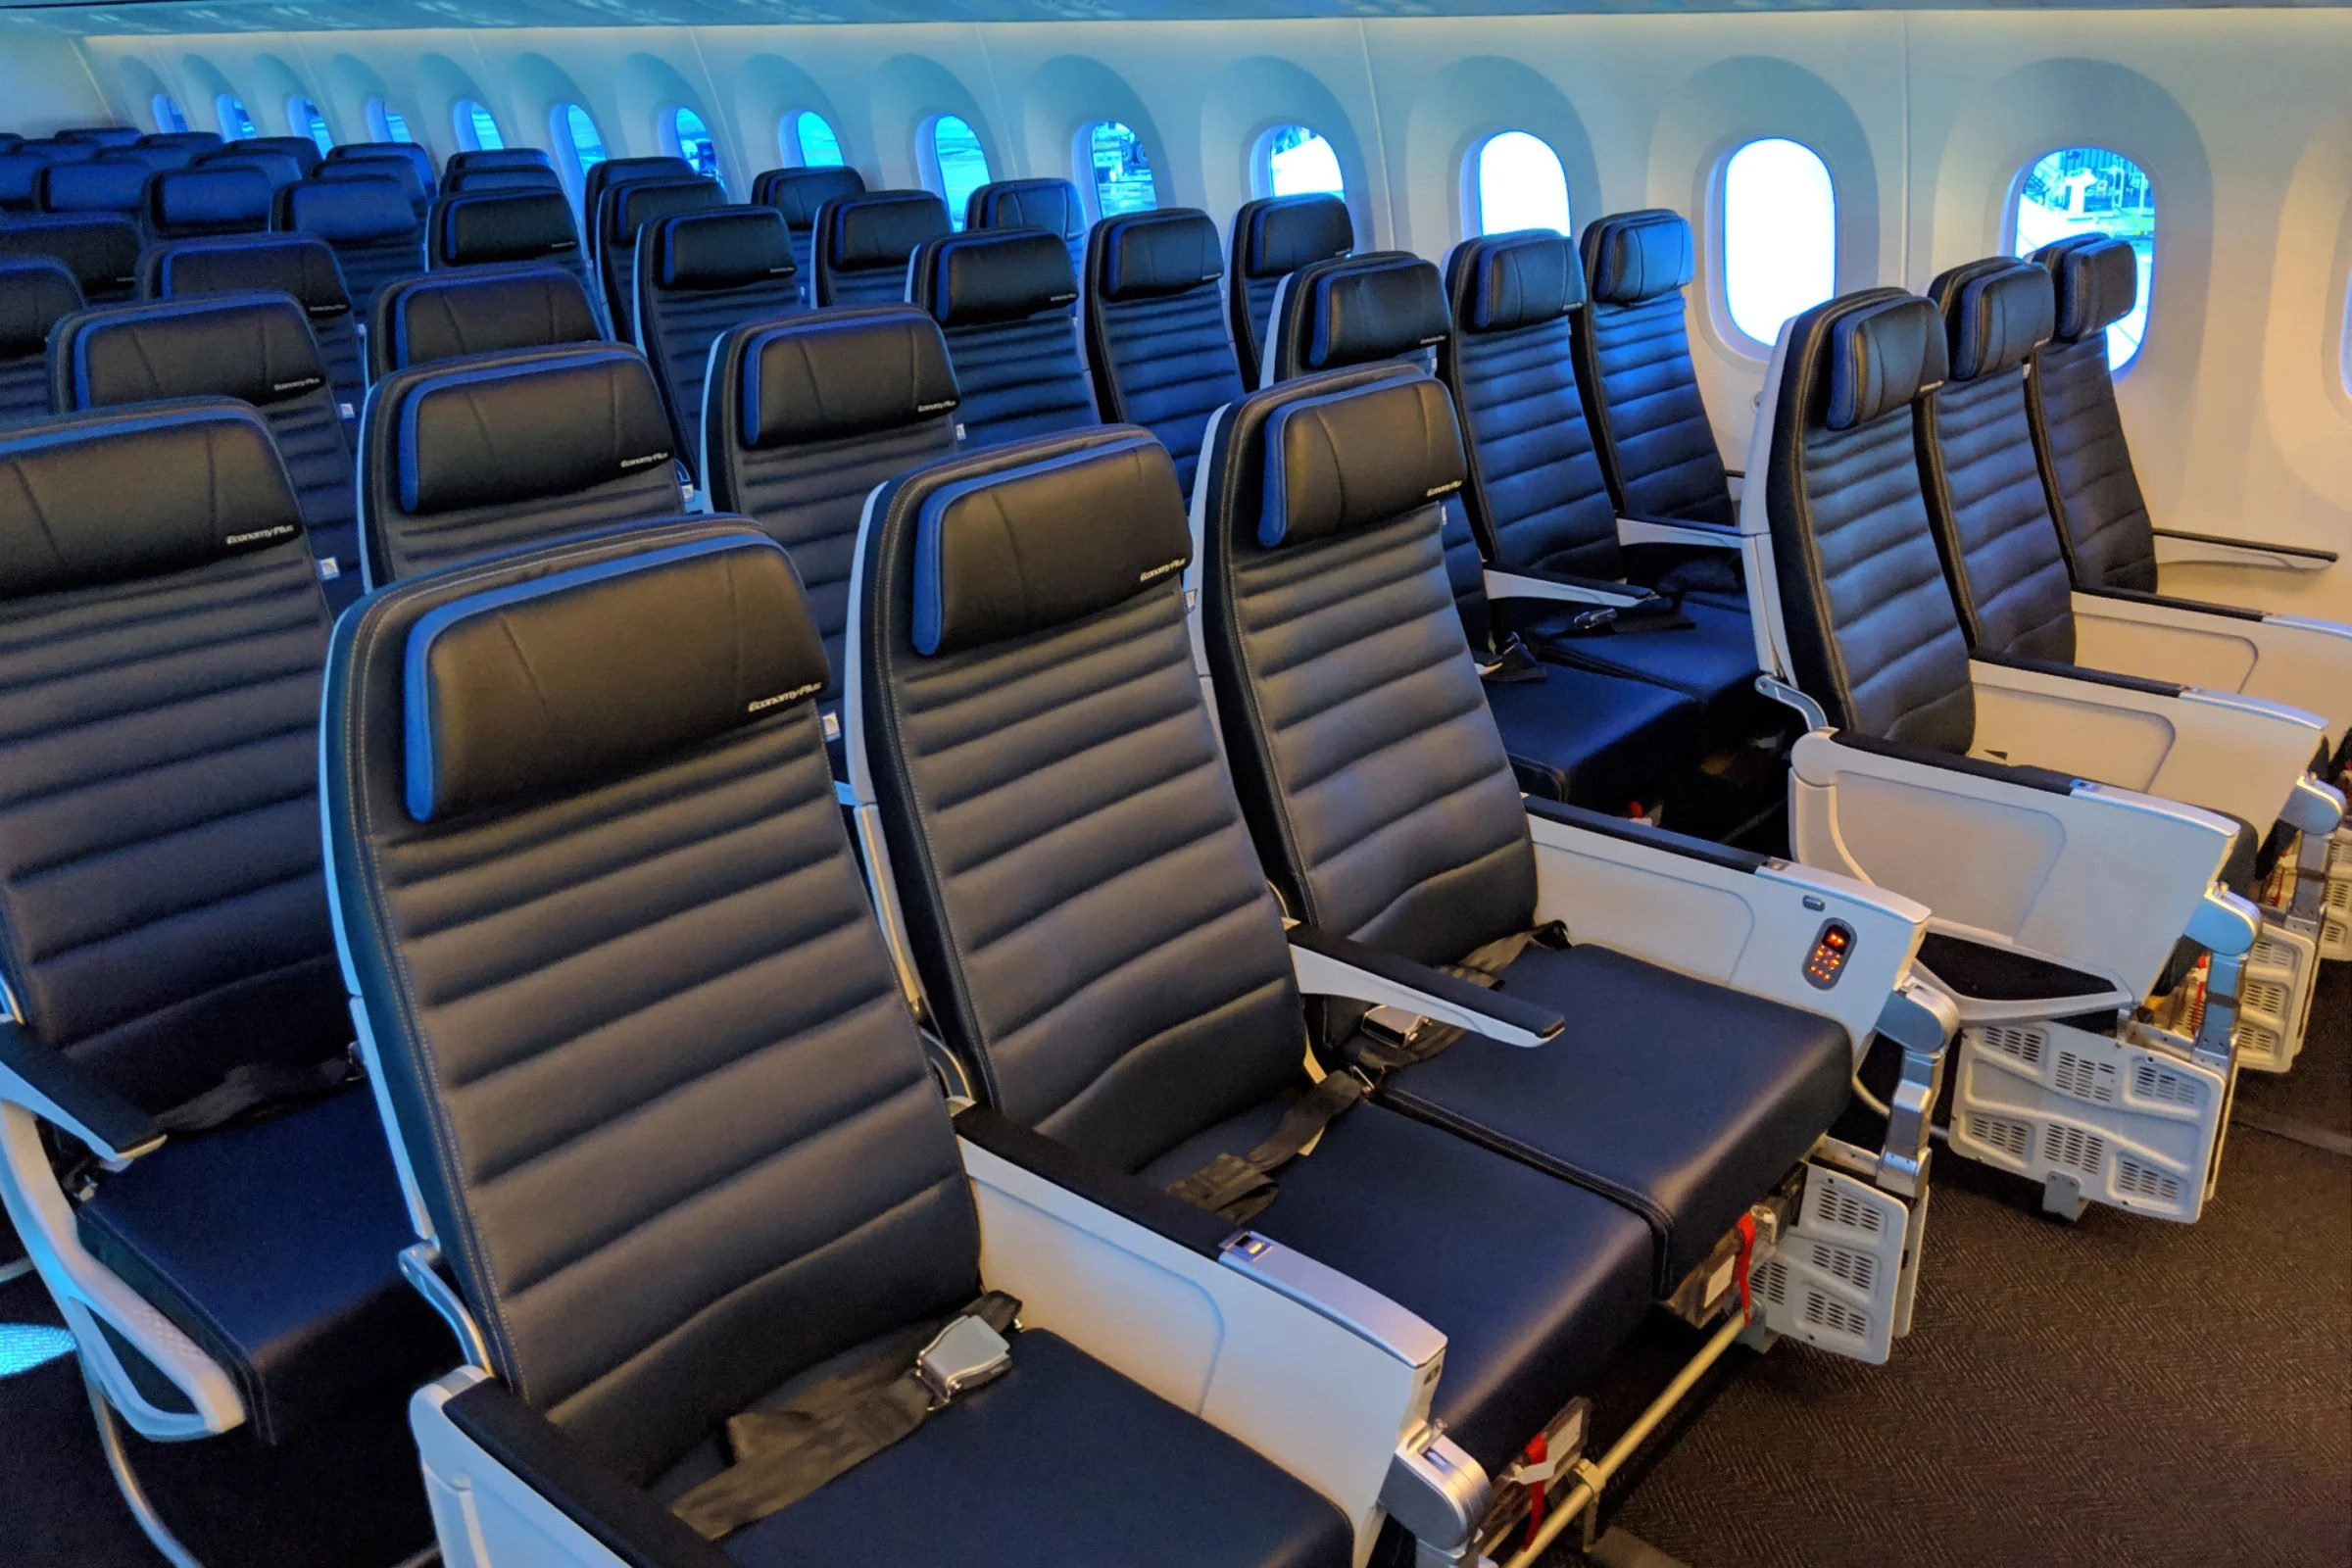 Deal Alert: United Offering 35% off Economy Plus in June